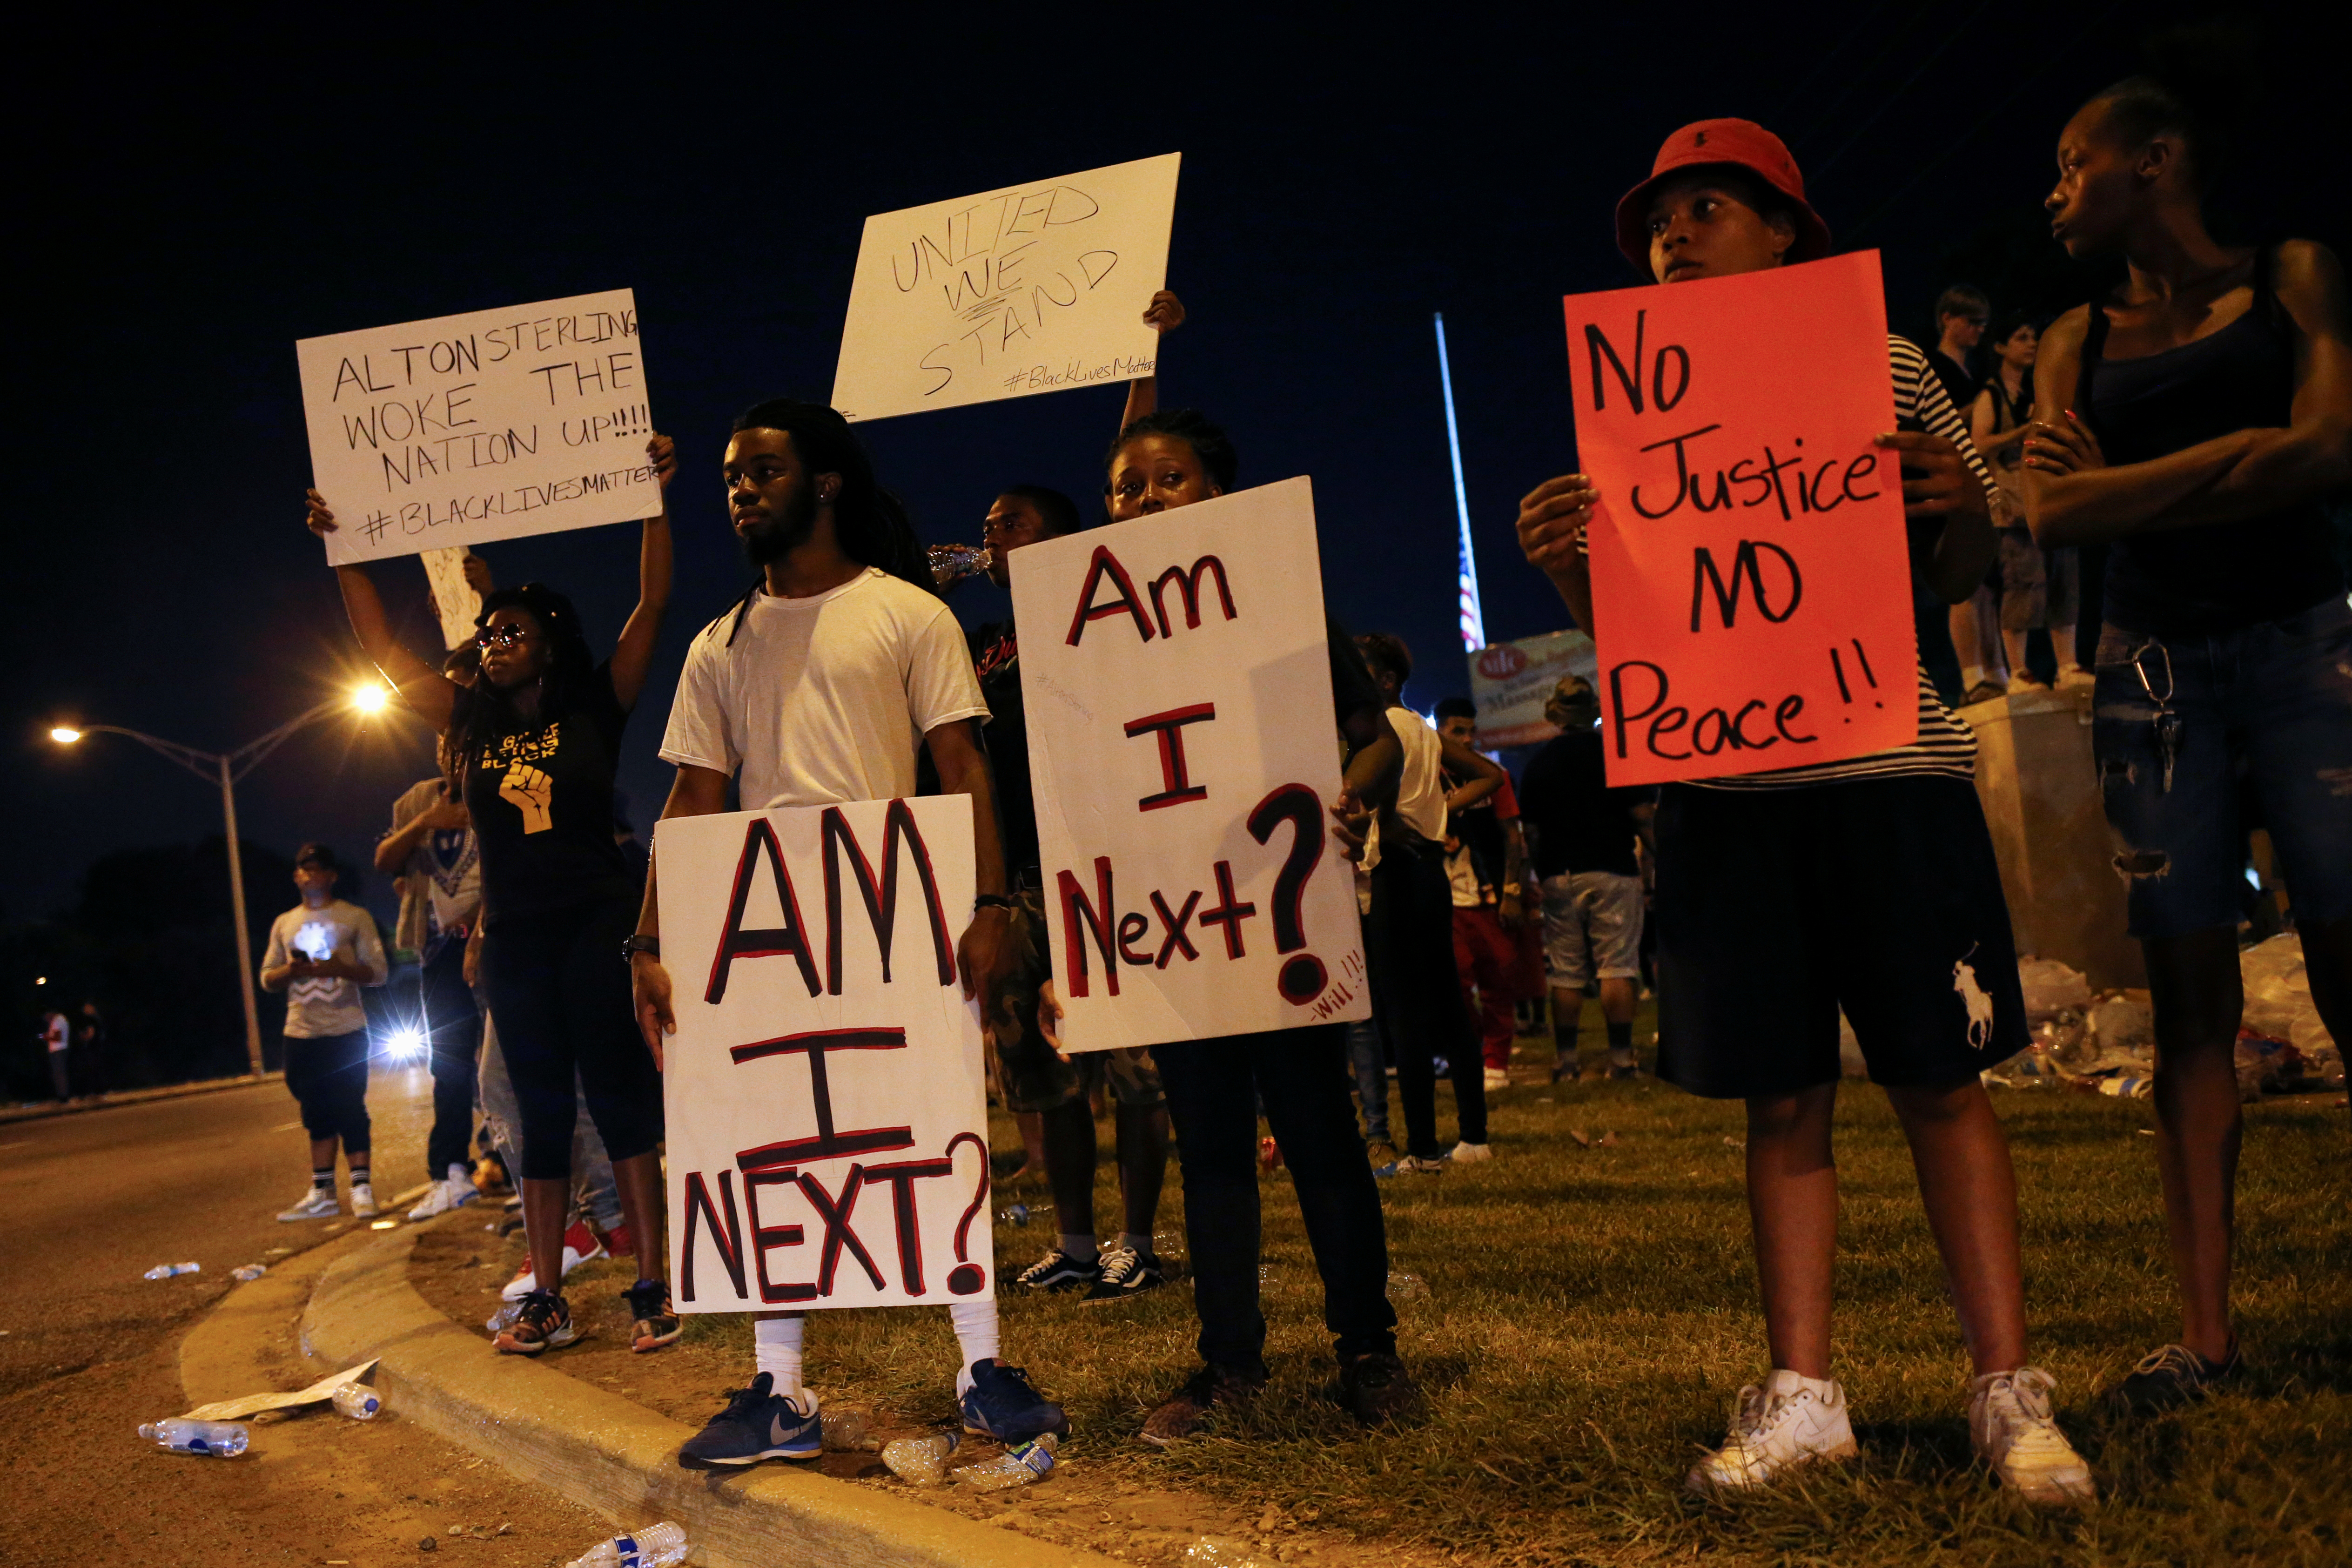 Demonstrators protest the shooting death of Alton Sterling near the headquarters of the Baton Rouge Police Department in Baton Rouge, Louisiana, July 10, 2016.